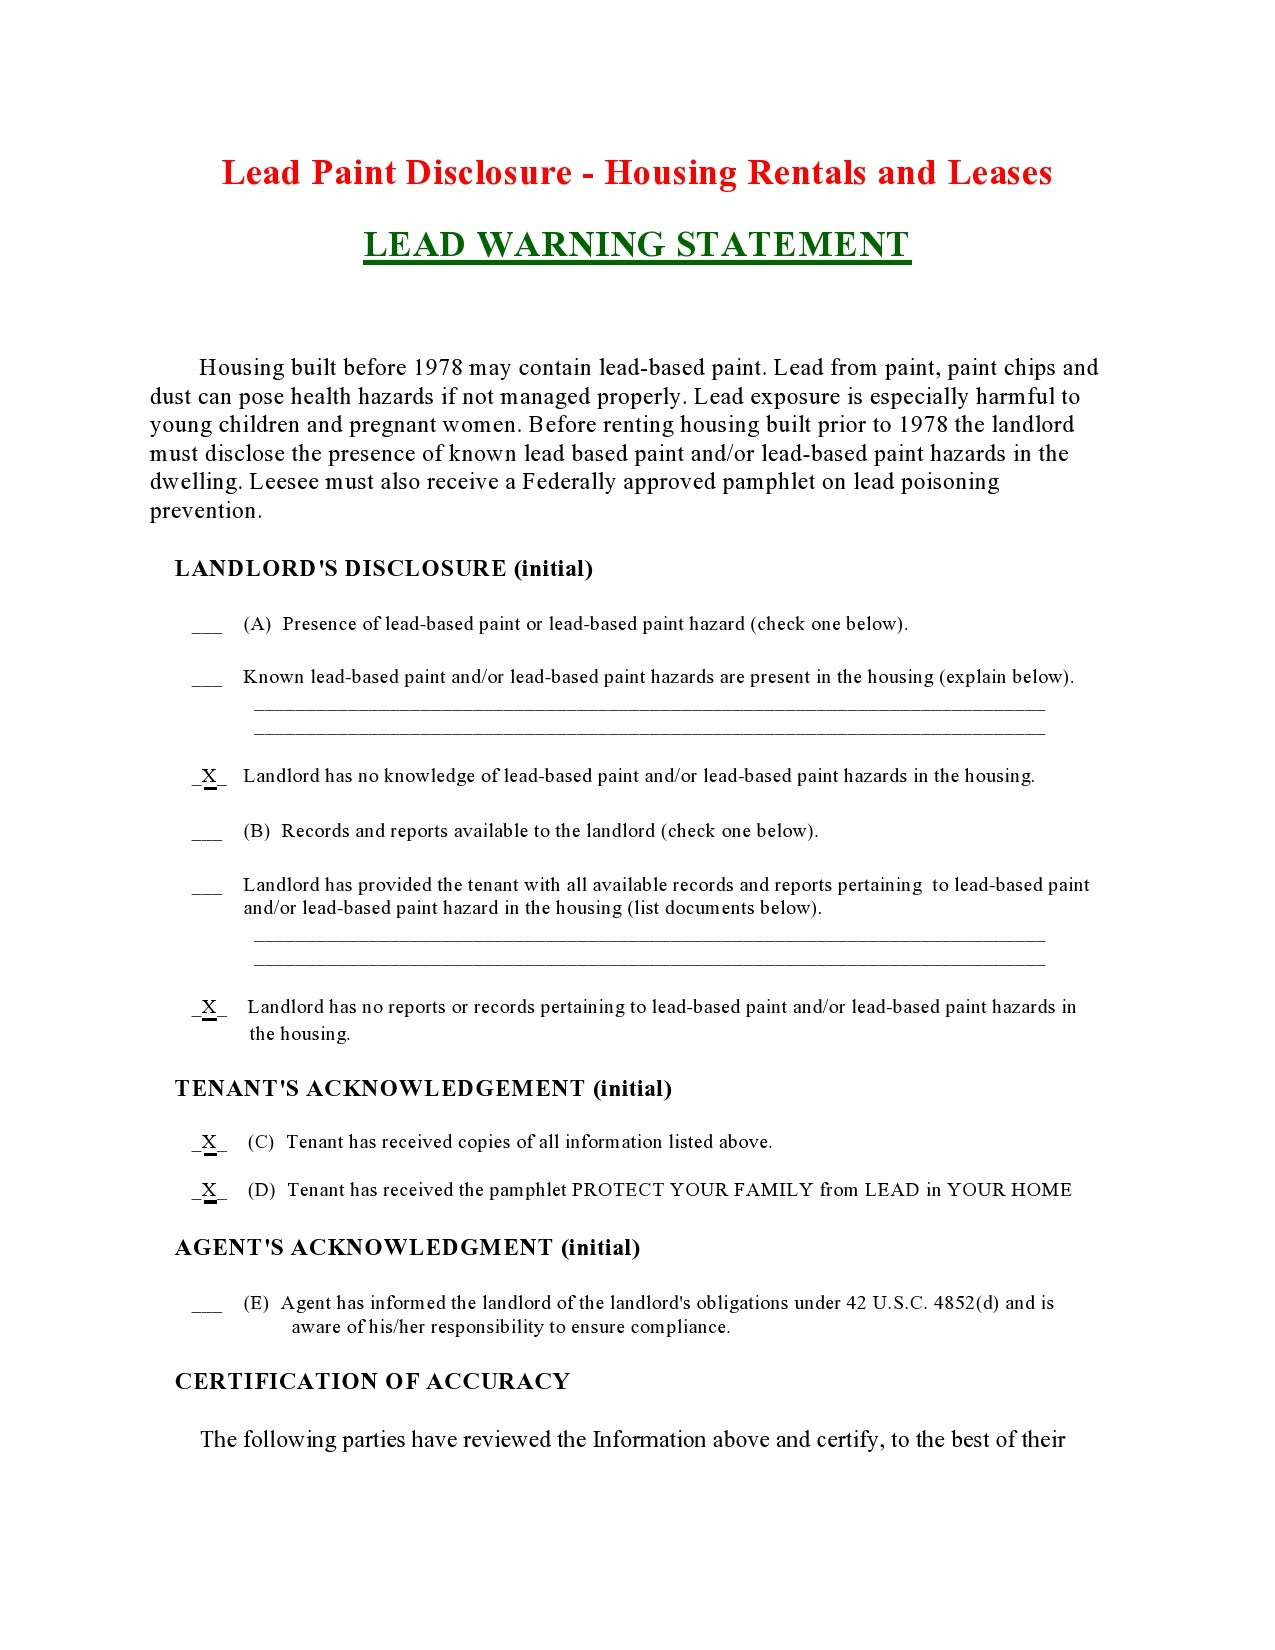 Free lead paint disclosure 14